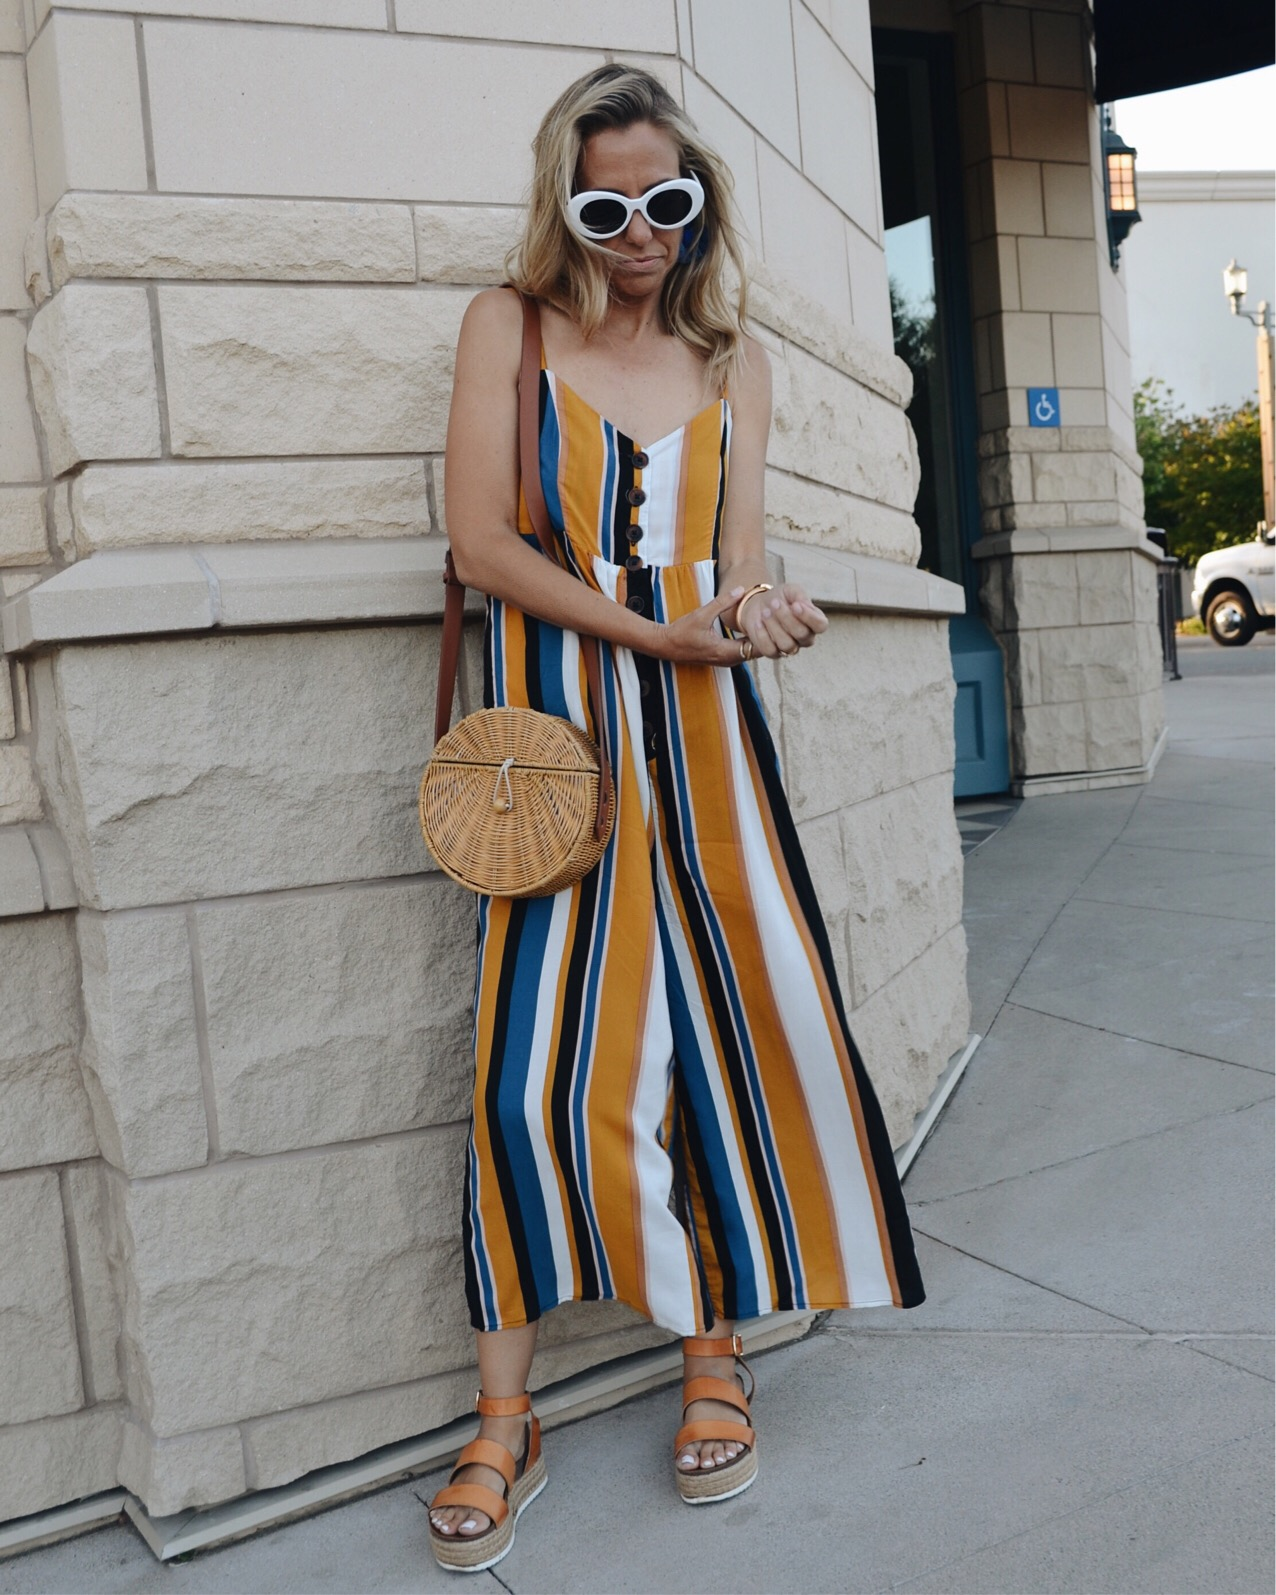 THE MUST HAVE SHOE TREND-PLATFORMS- Jaclyn De Leon Style - striped jumpsuit + woven handbag + espadrille sandals + retro style sunglasses + what to wear this summer + casual street style + DSW